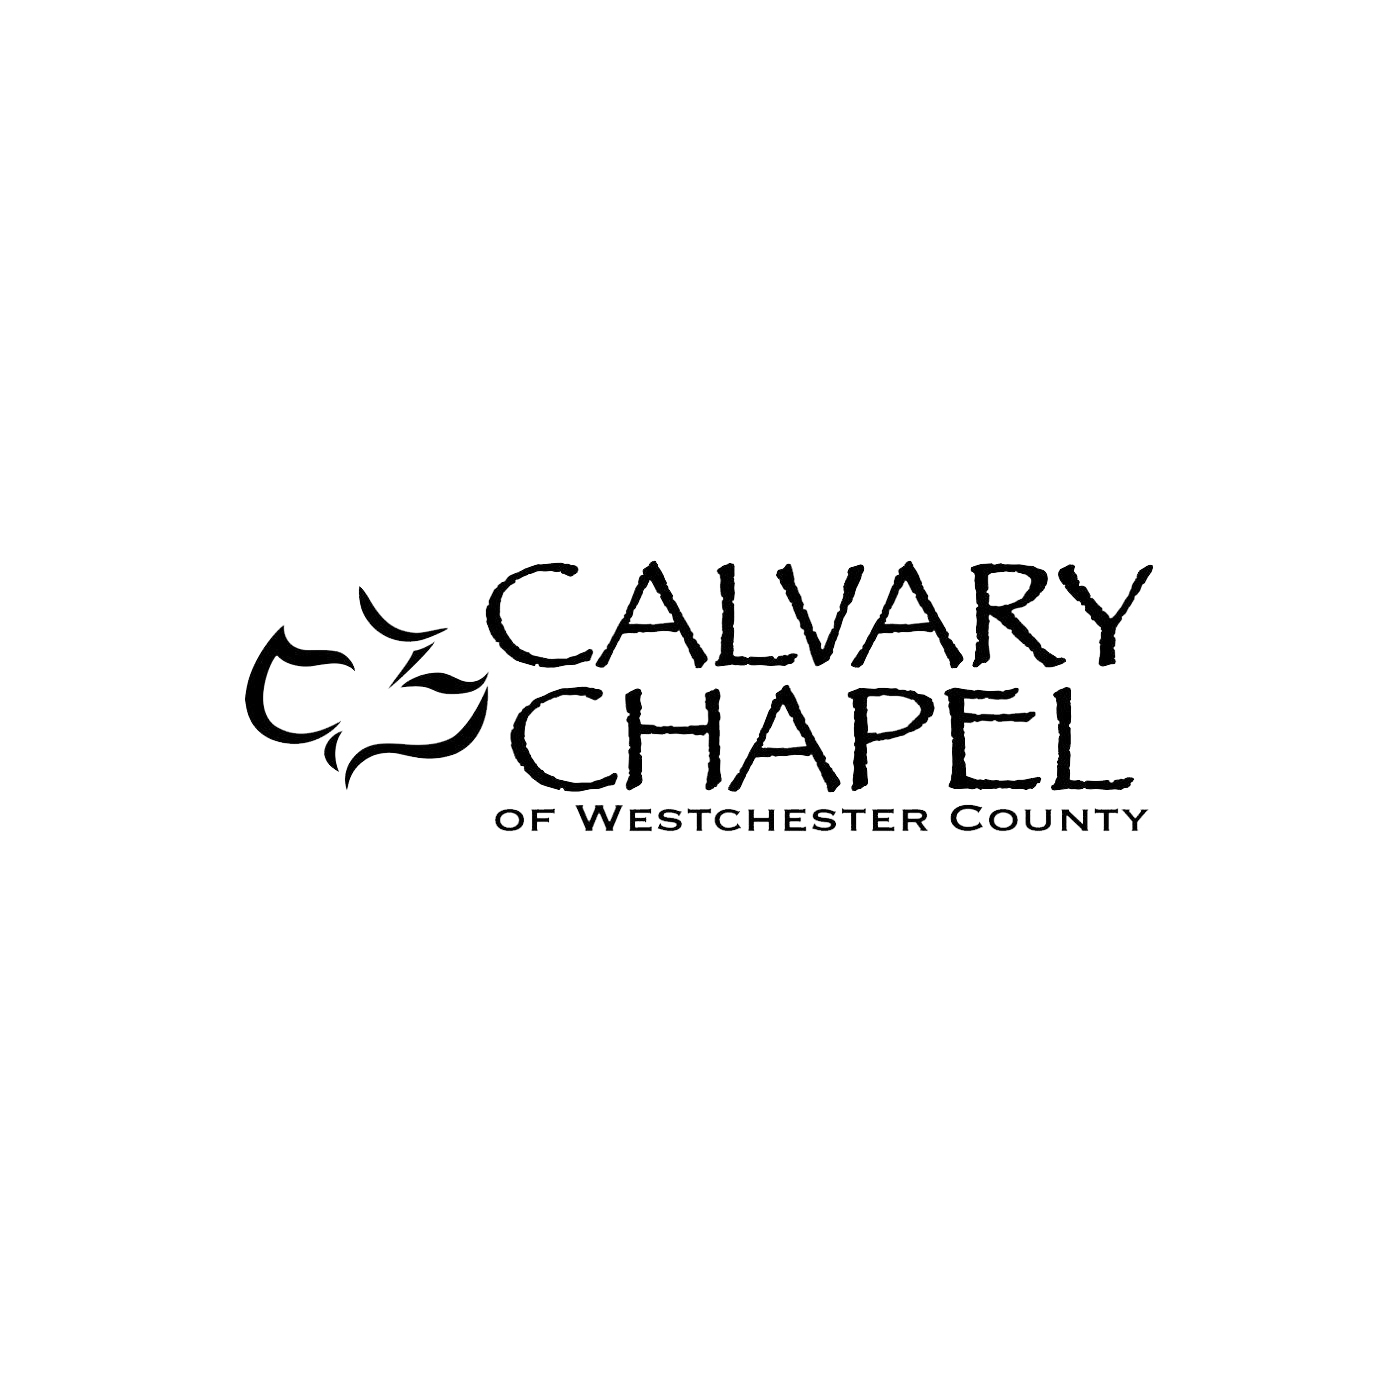 Calvary Chapel of Westchester